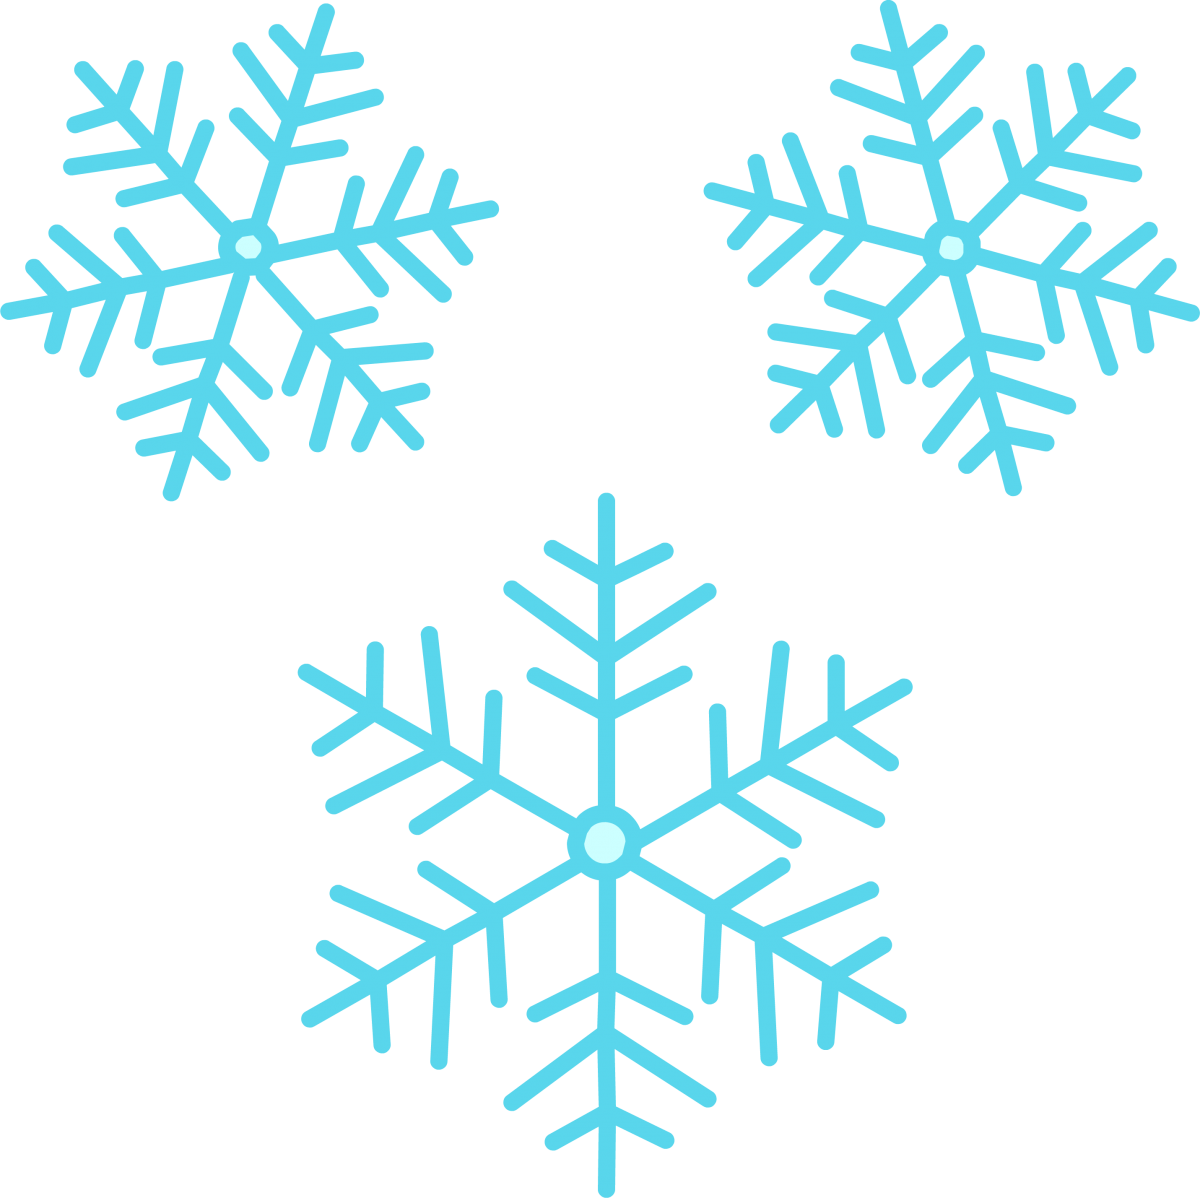 Snowflake clipart cute vector black and white Theme-Based Multi-Sensory Activities for Students with Visual ... vector black and white